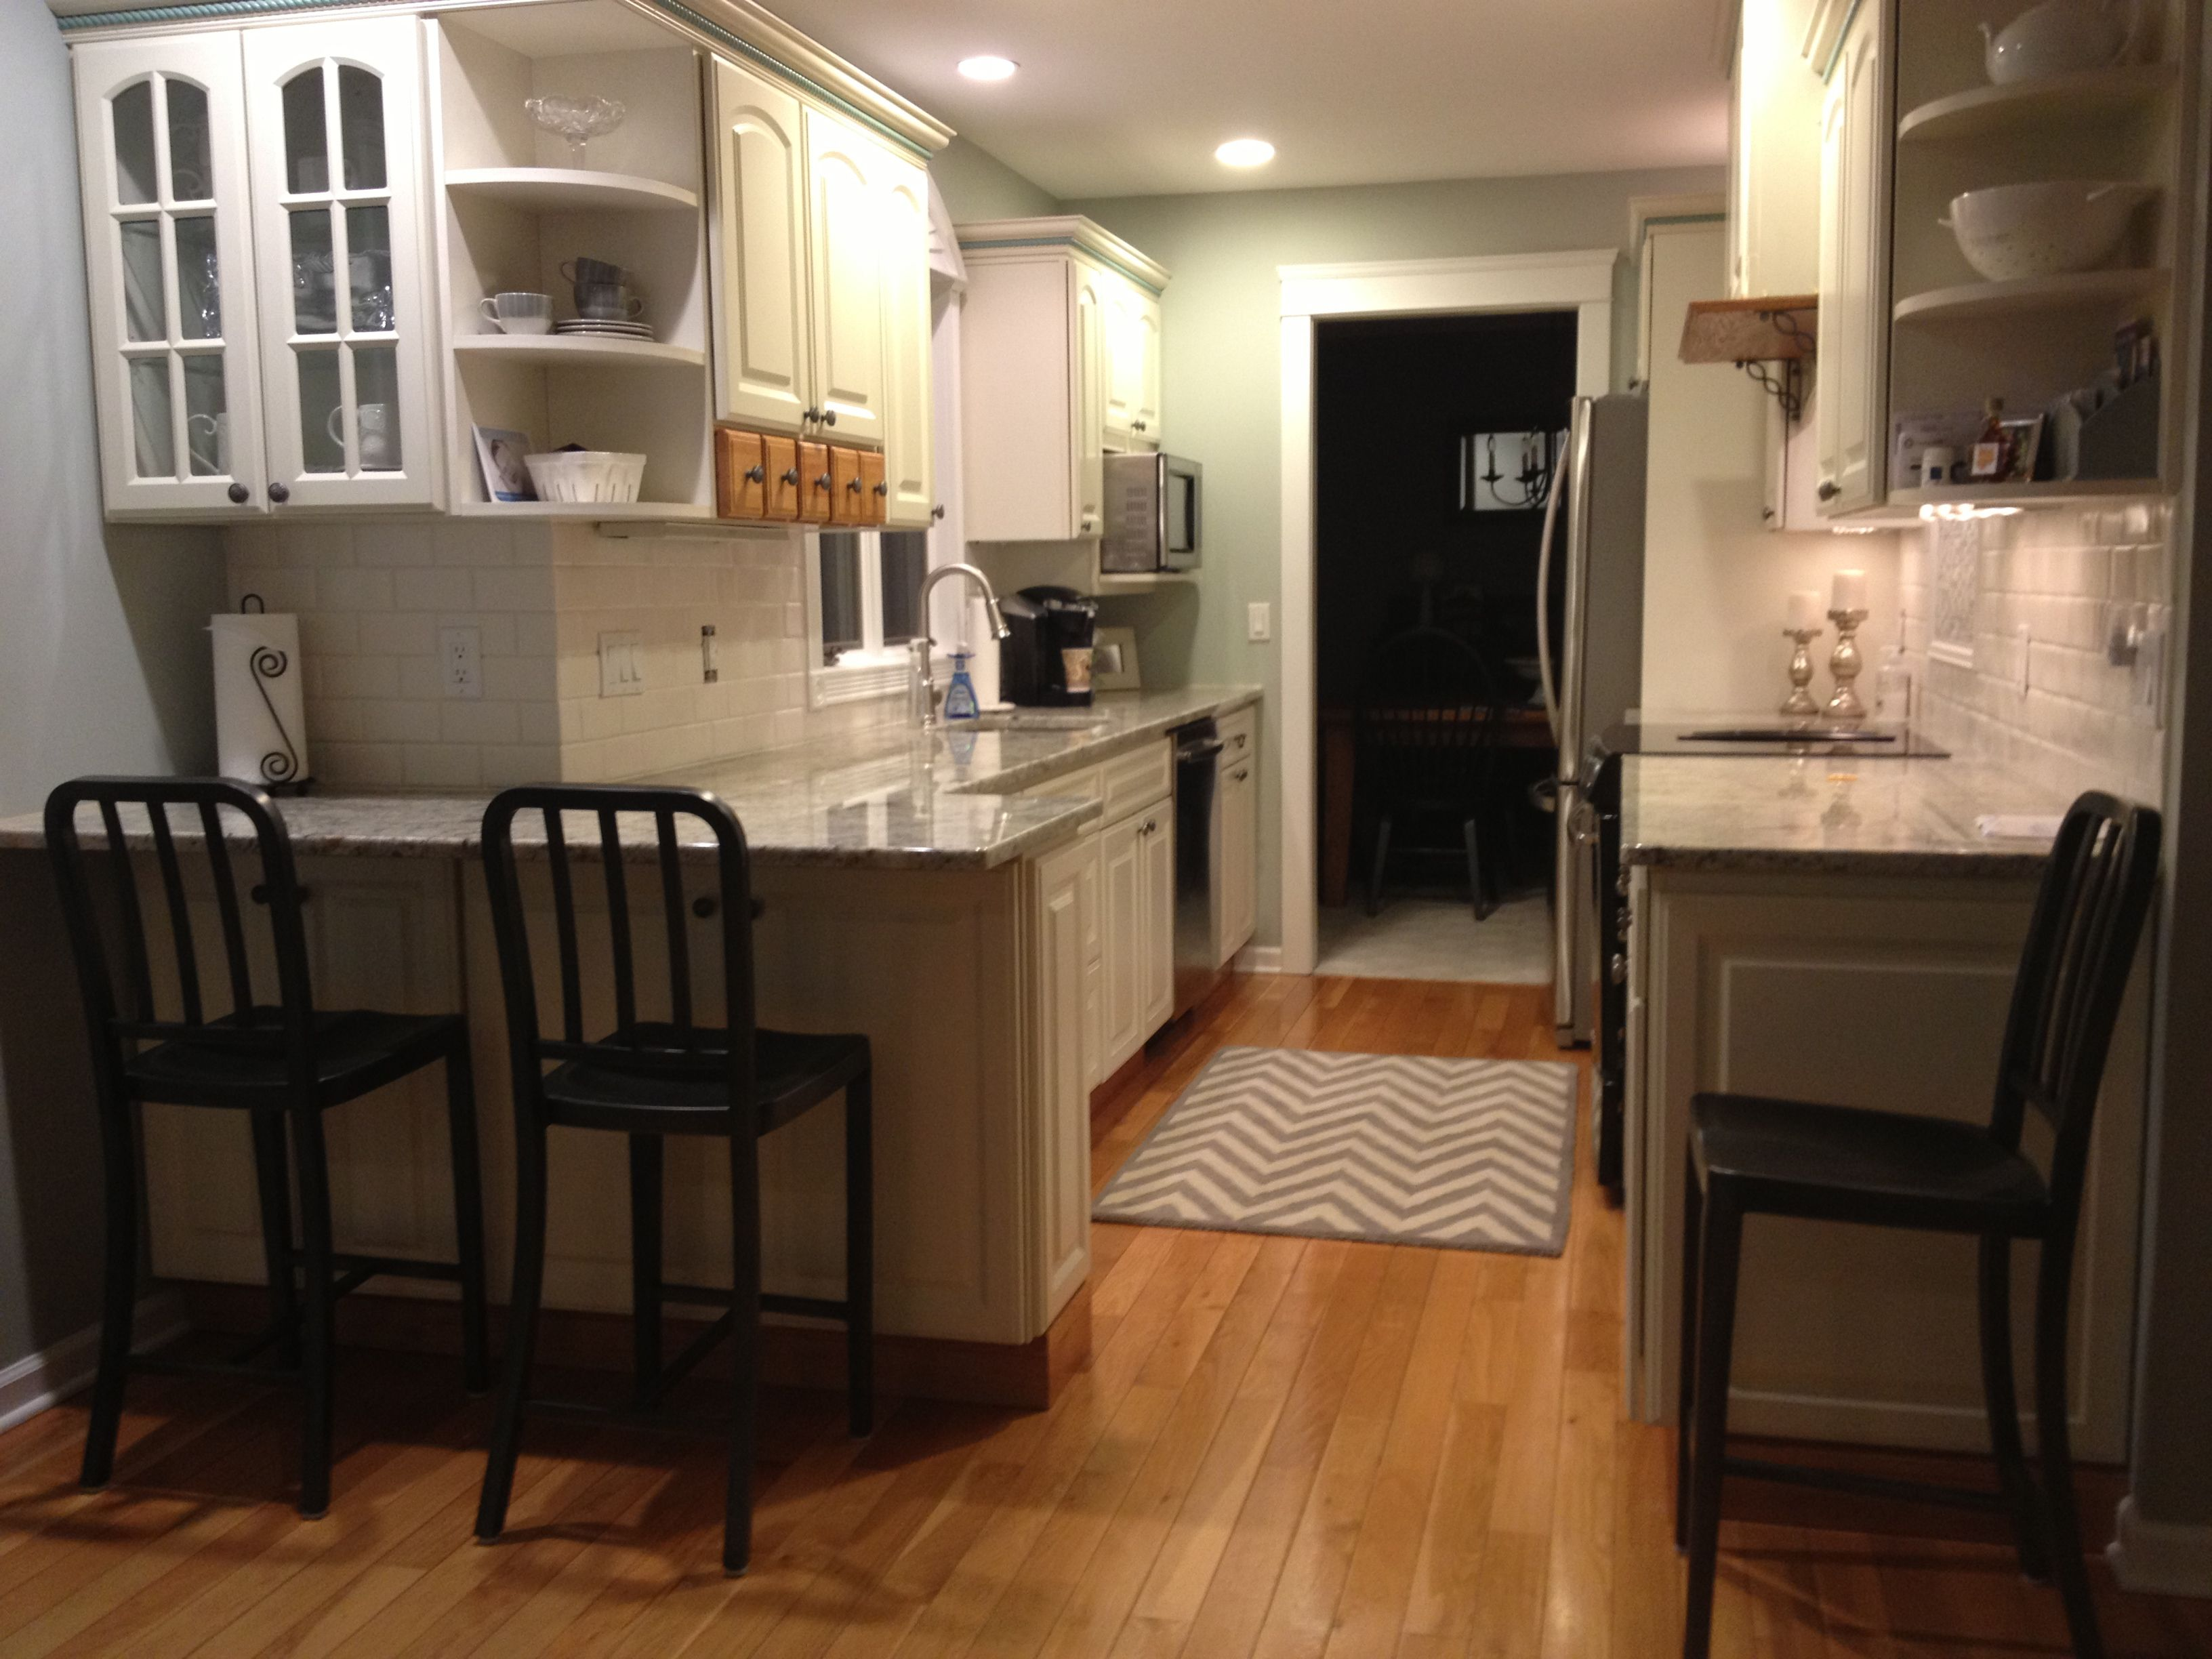 Elegant galley kitchen remodels for your modern kitchen design ideas galley kitchen remodels galley kitchen remodels kitchen remodel small kitchen